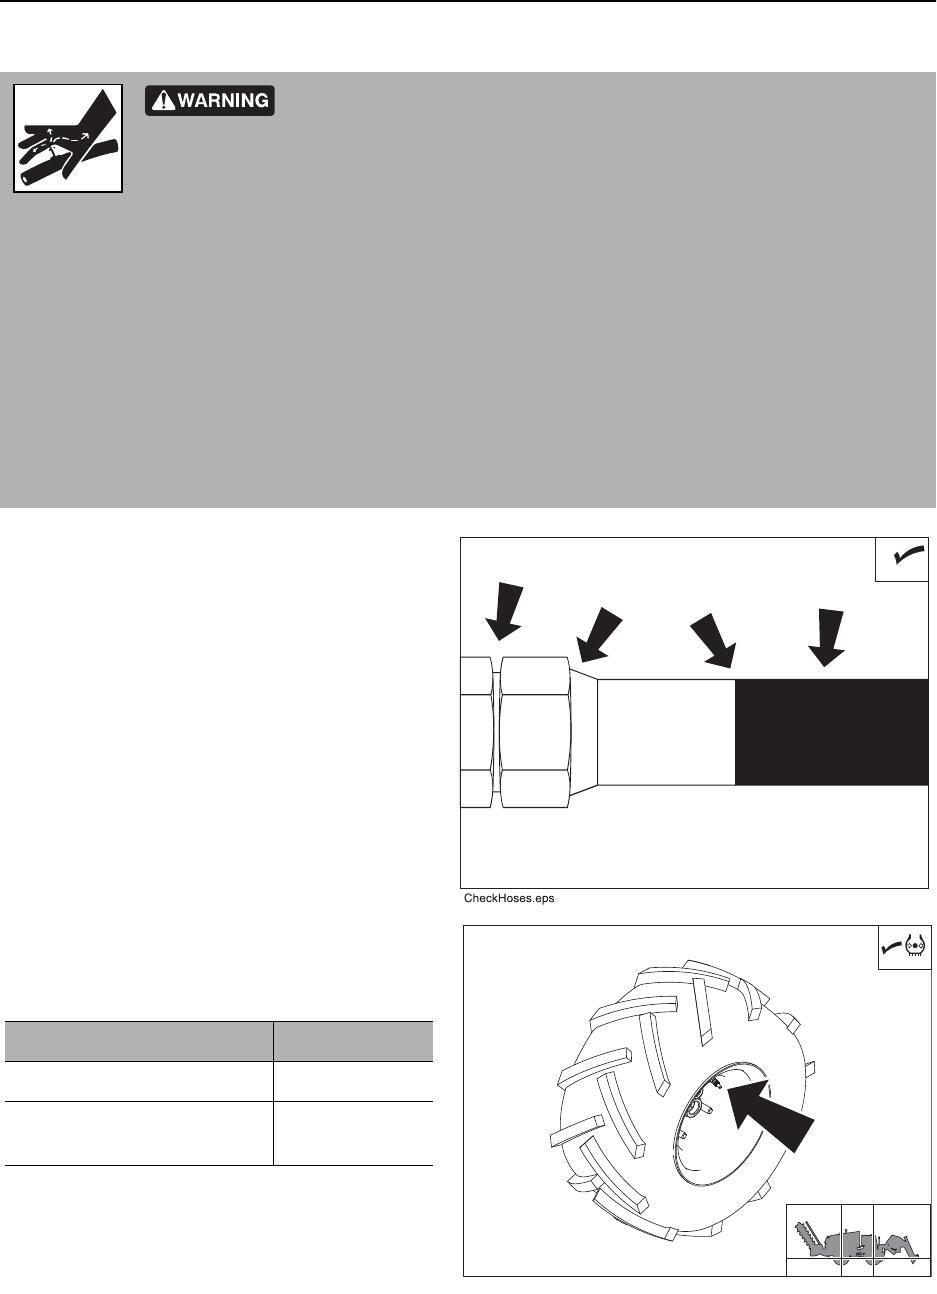 medium resolution of ditch witch amp meter wiring diagram wiring libraryditch witch 410sx operators manual download page 89 sakai